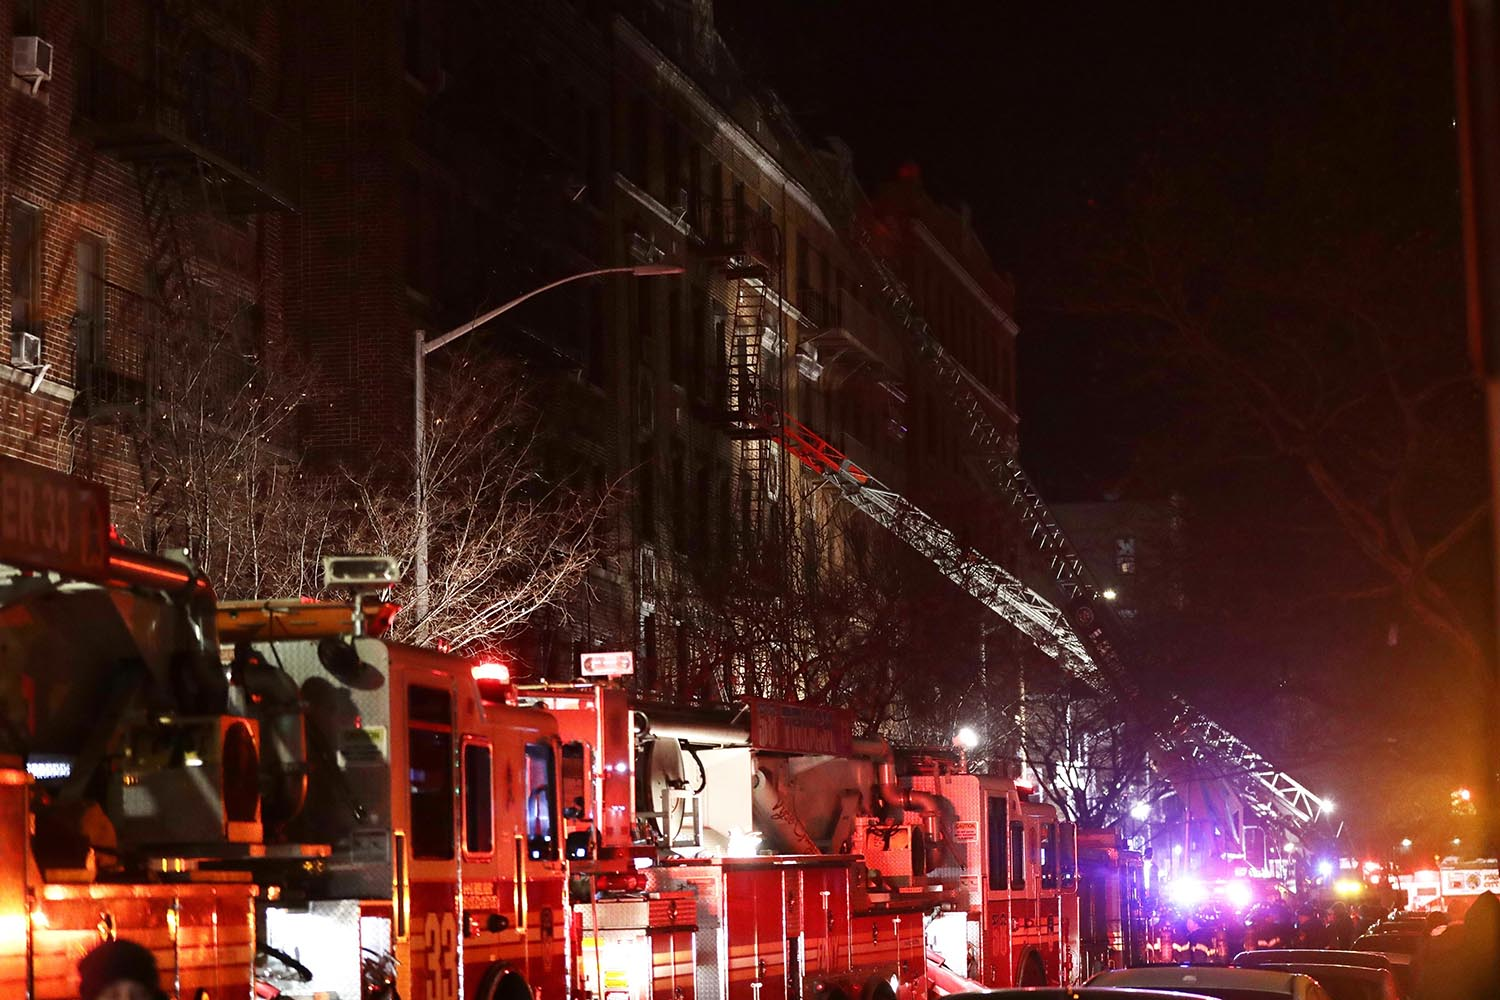 <div class='meta'><div class='origin-logo' data-origin='AP'></div><span class='caption-text' data-credit='AP Photo/Frank Franklin II'>Firefighters respond to a building fire Thursday, Dec. 28, 2017, in the Bronx borough of New York.</span></div>